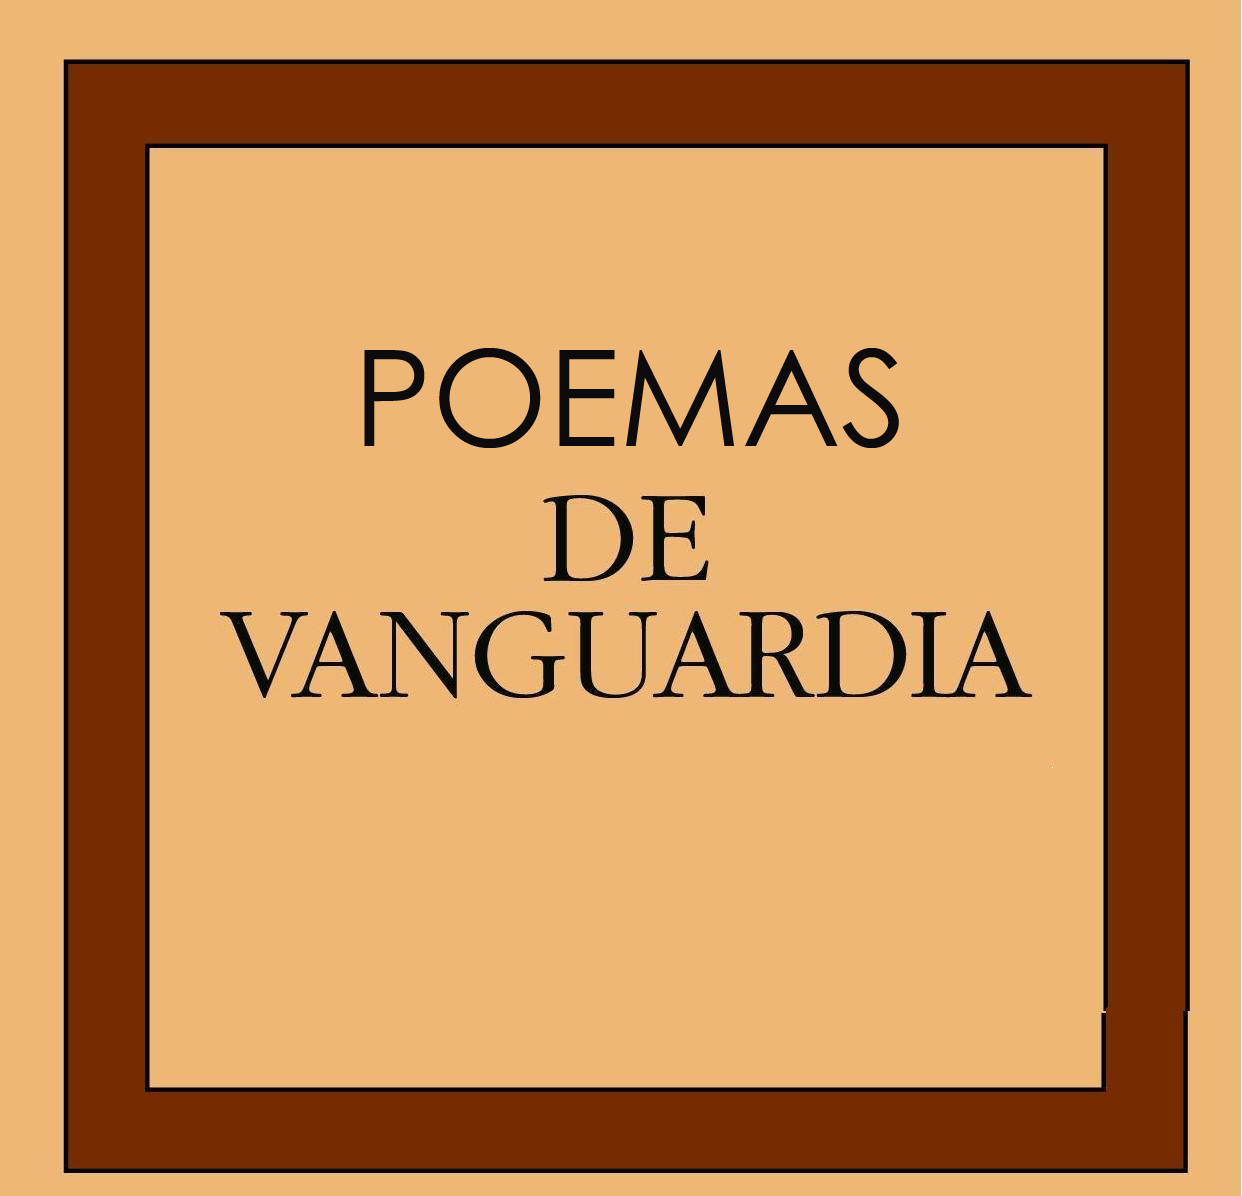 Poemas de vanguardia biblioteca virtual de literatura wiki for Vanguardia concepto